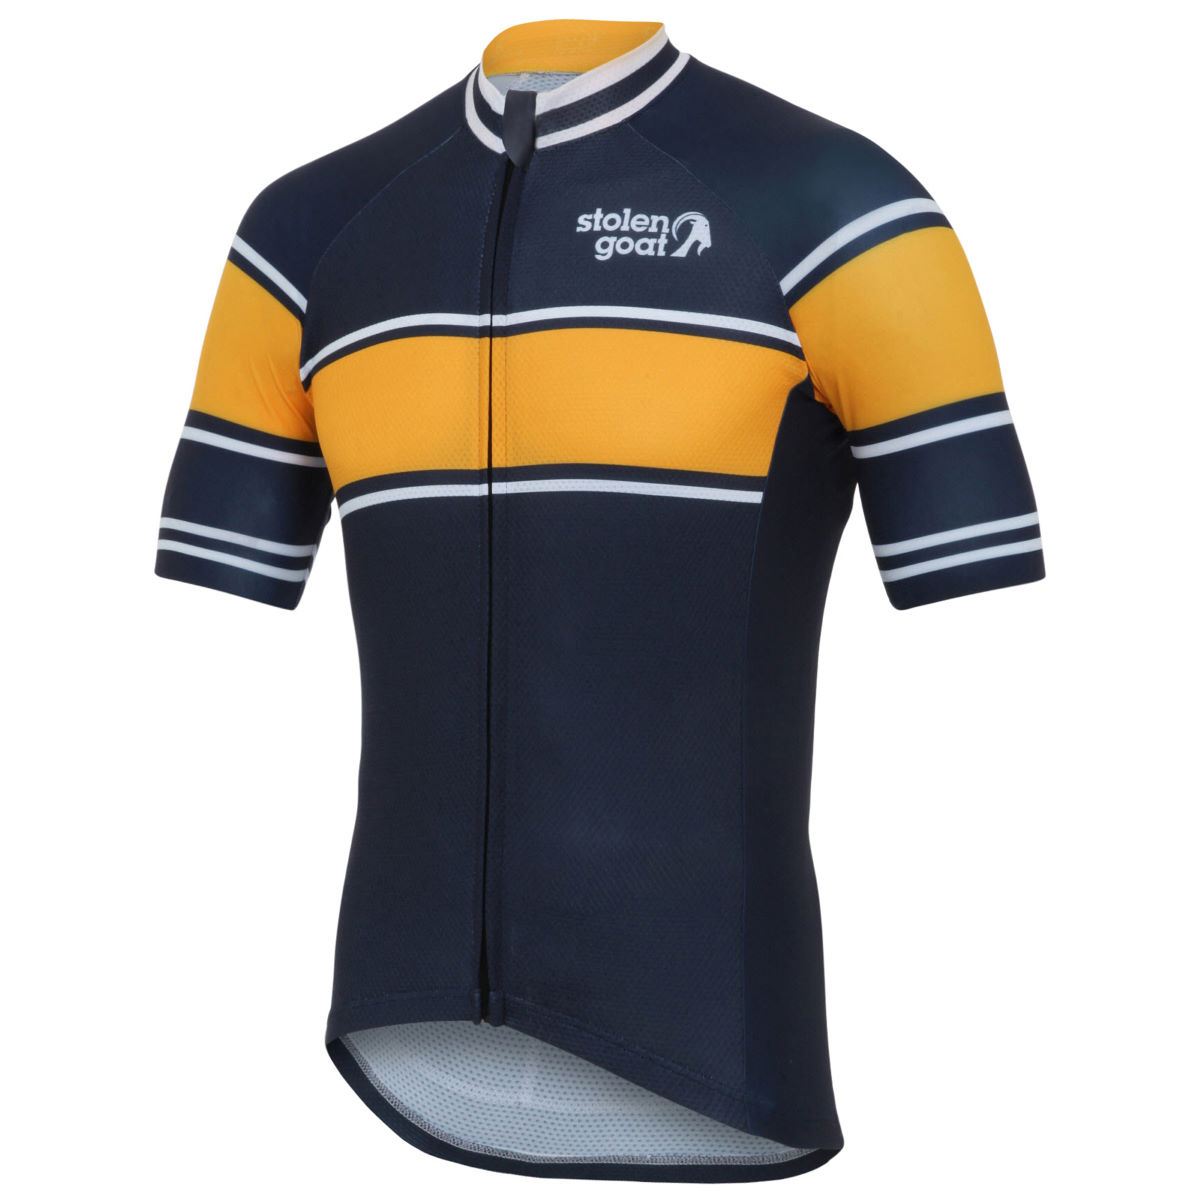 Maillot Stolen Goat Bodyline Flex (manches courtes) - S Flex Navy